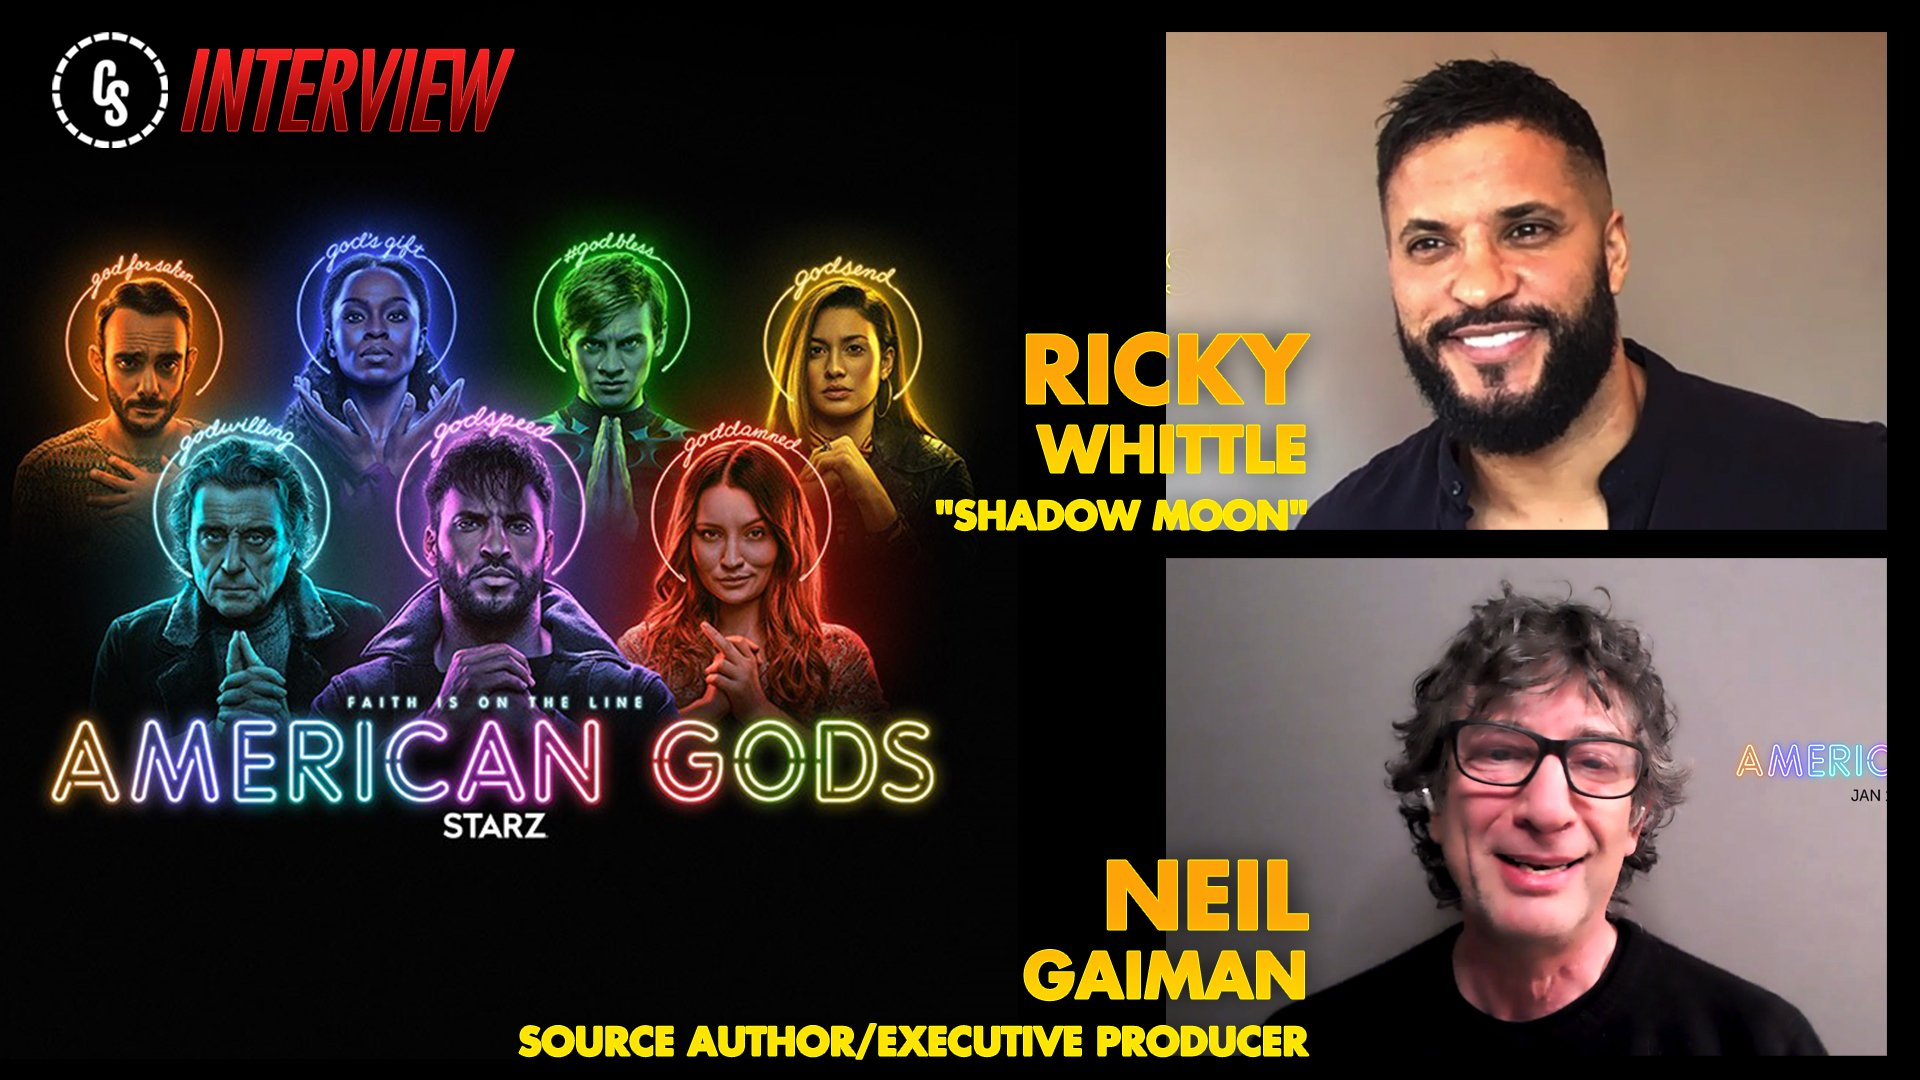 CS Video: Neil Gaiman & Ricky Whittle Talk American Gods Season 3